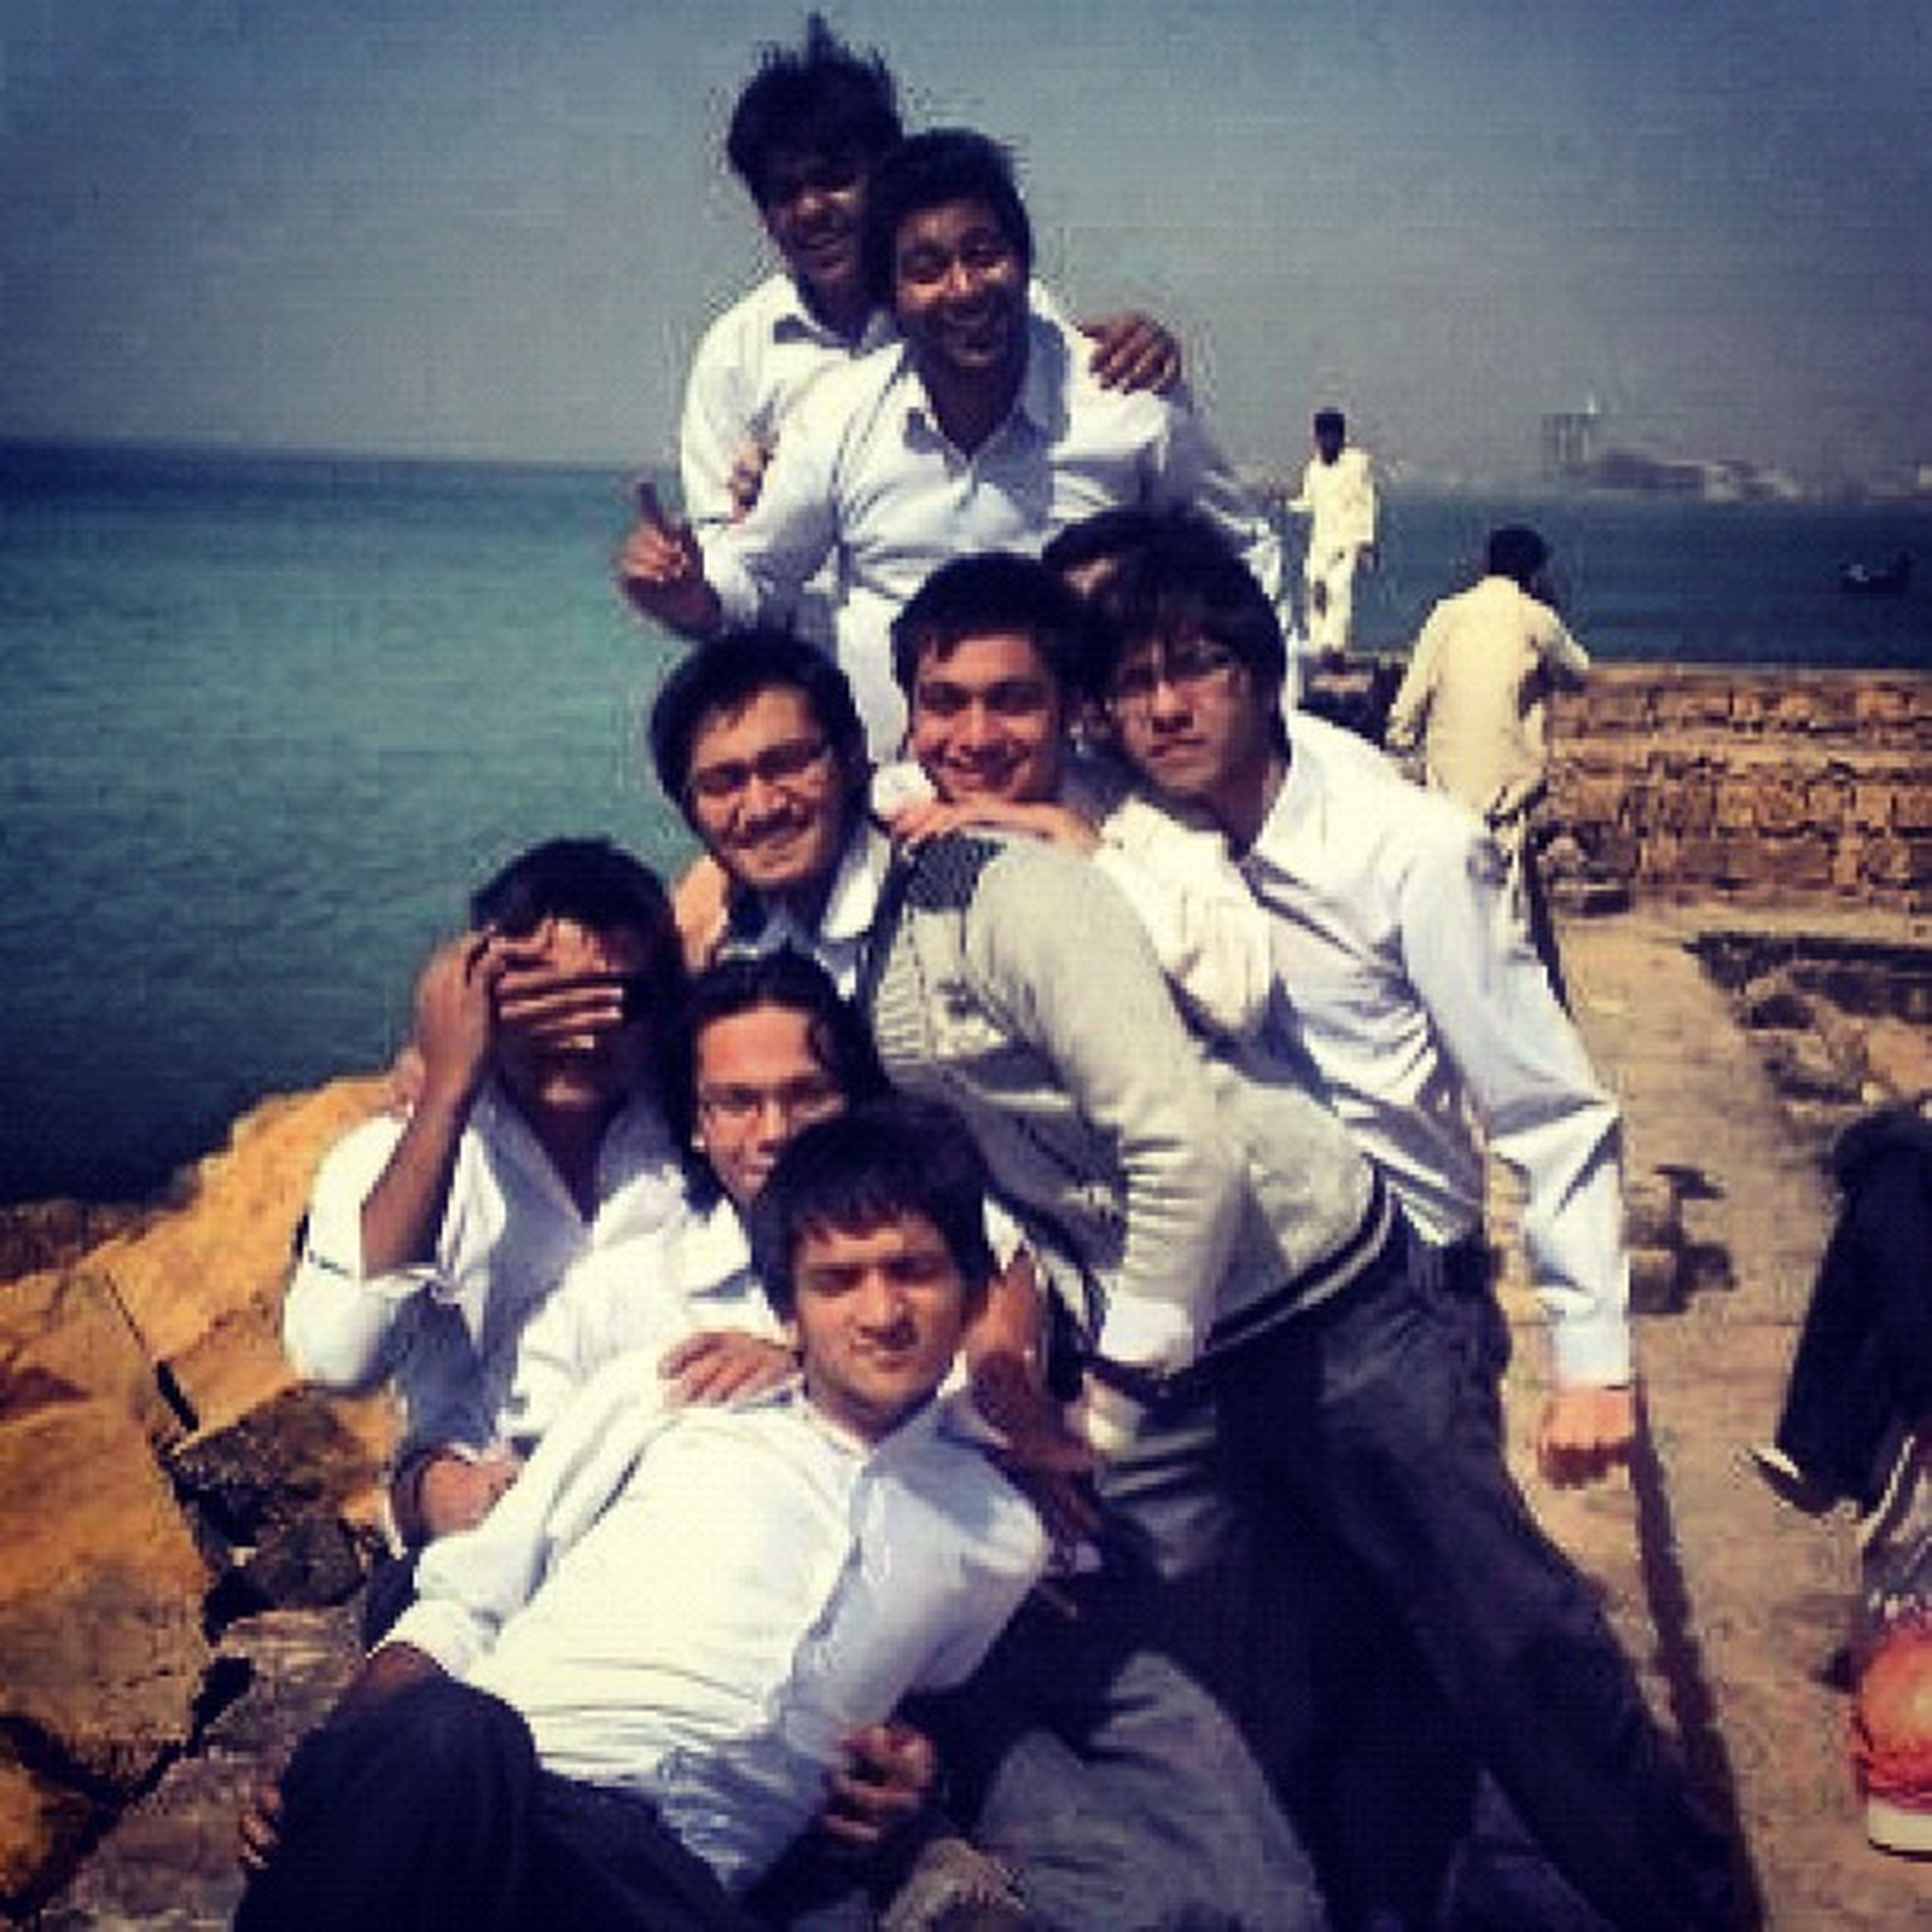 togetherness, lifestyles, bonding, leisure activity, love, person, water, young men, casual clothing, boys, friendship, family, childhood, happiness, sea, vacations, smiling, sitting